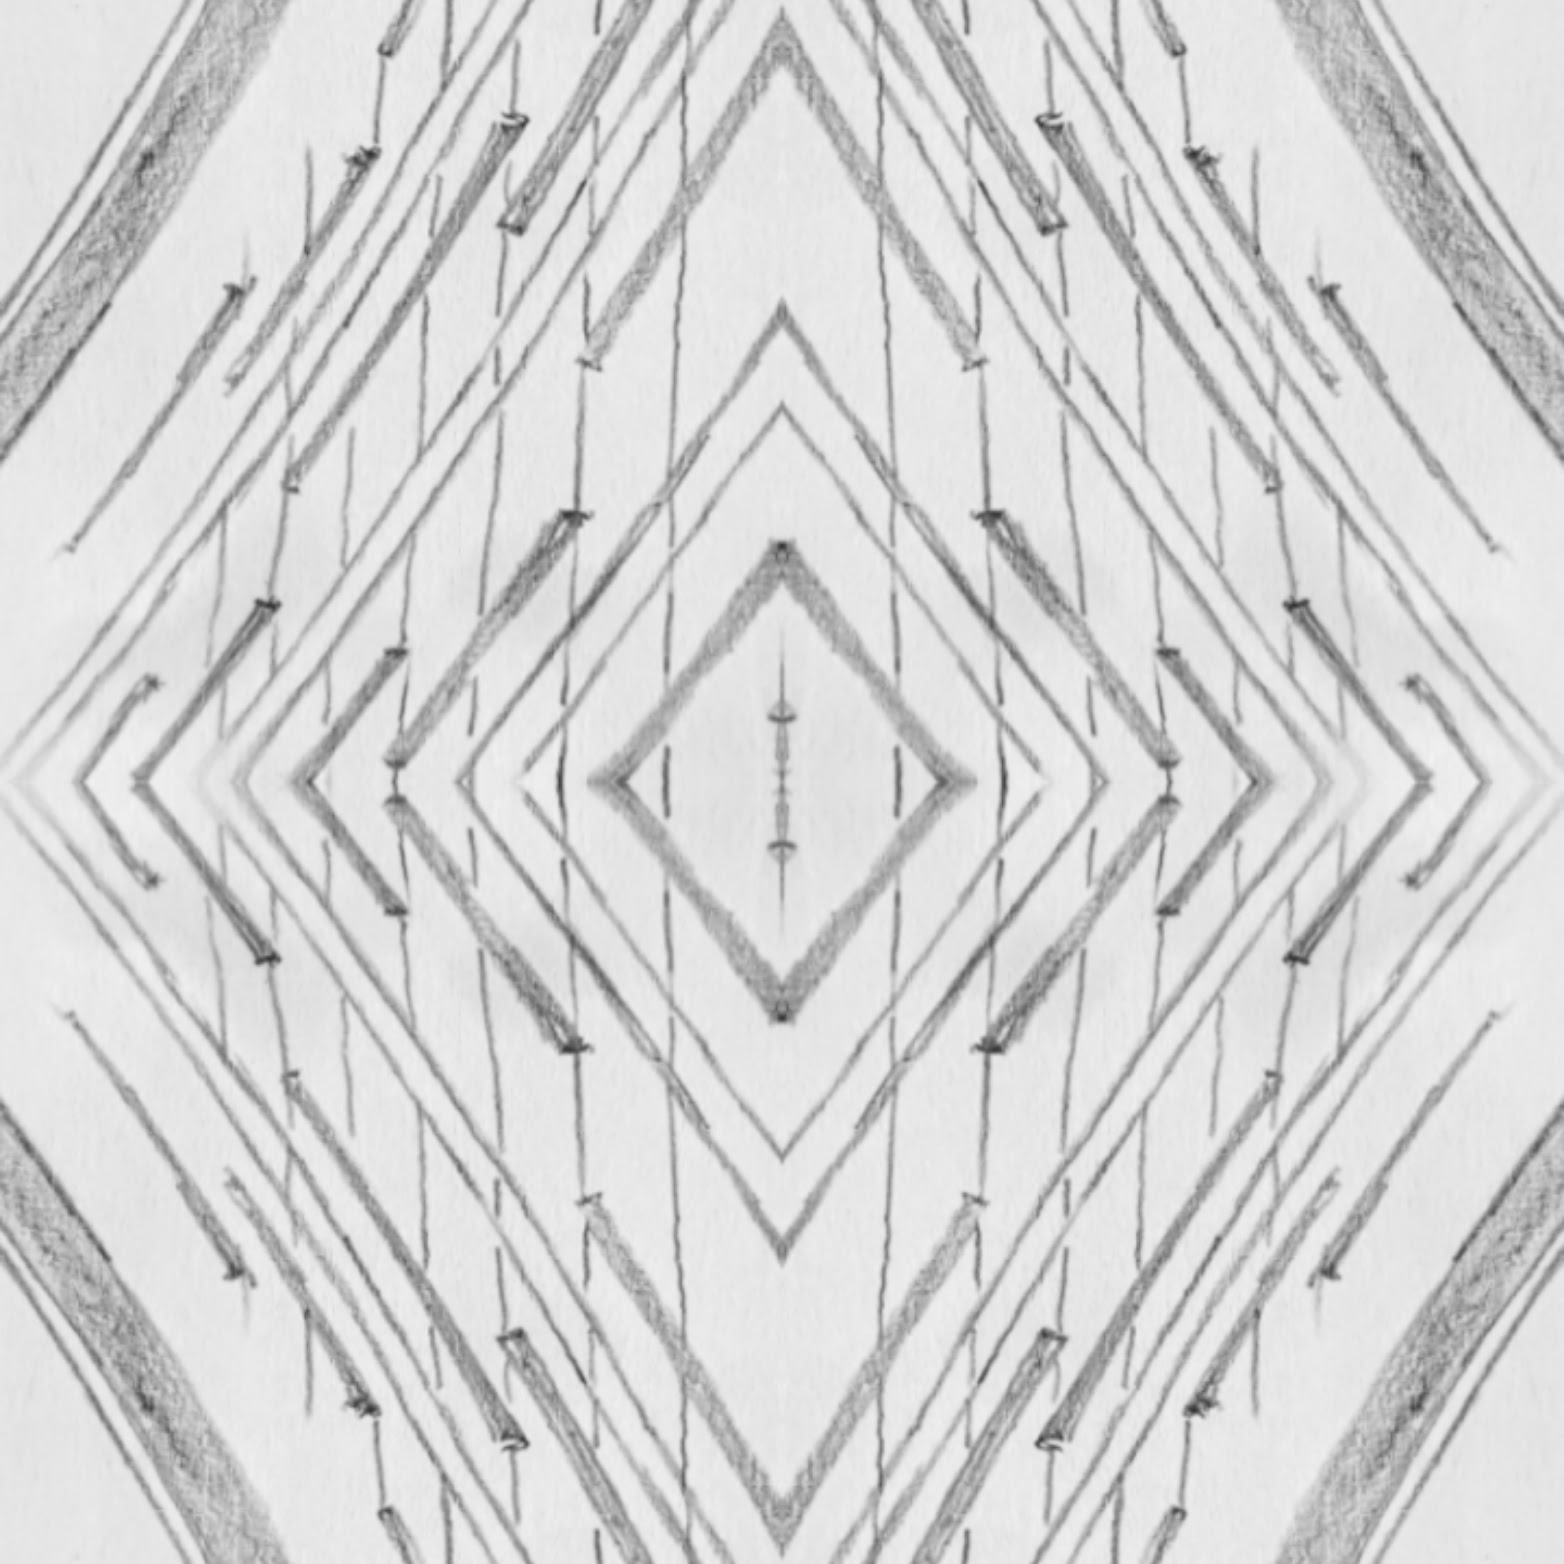 architectural pattern drawing 1 diamond